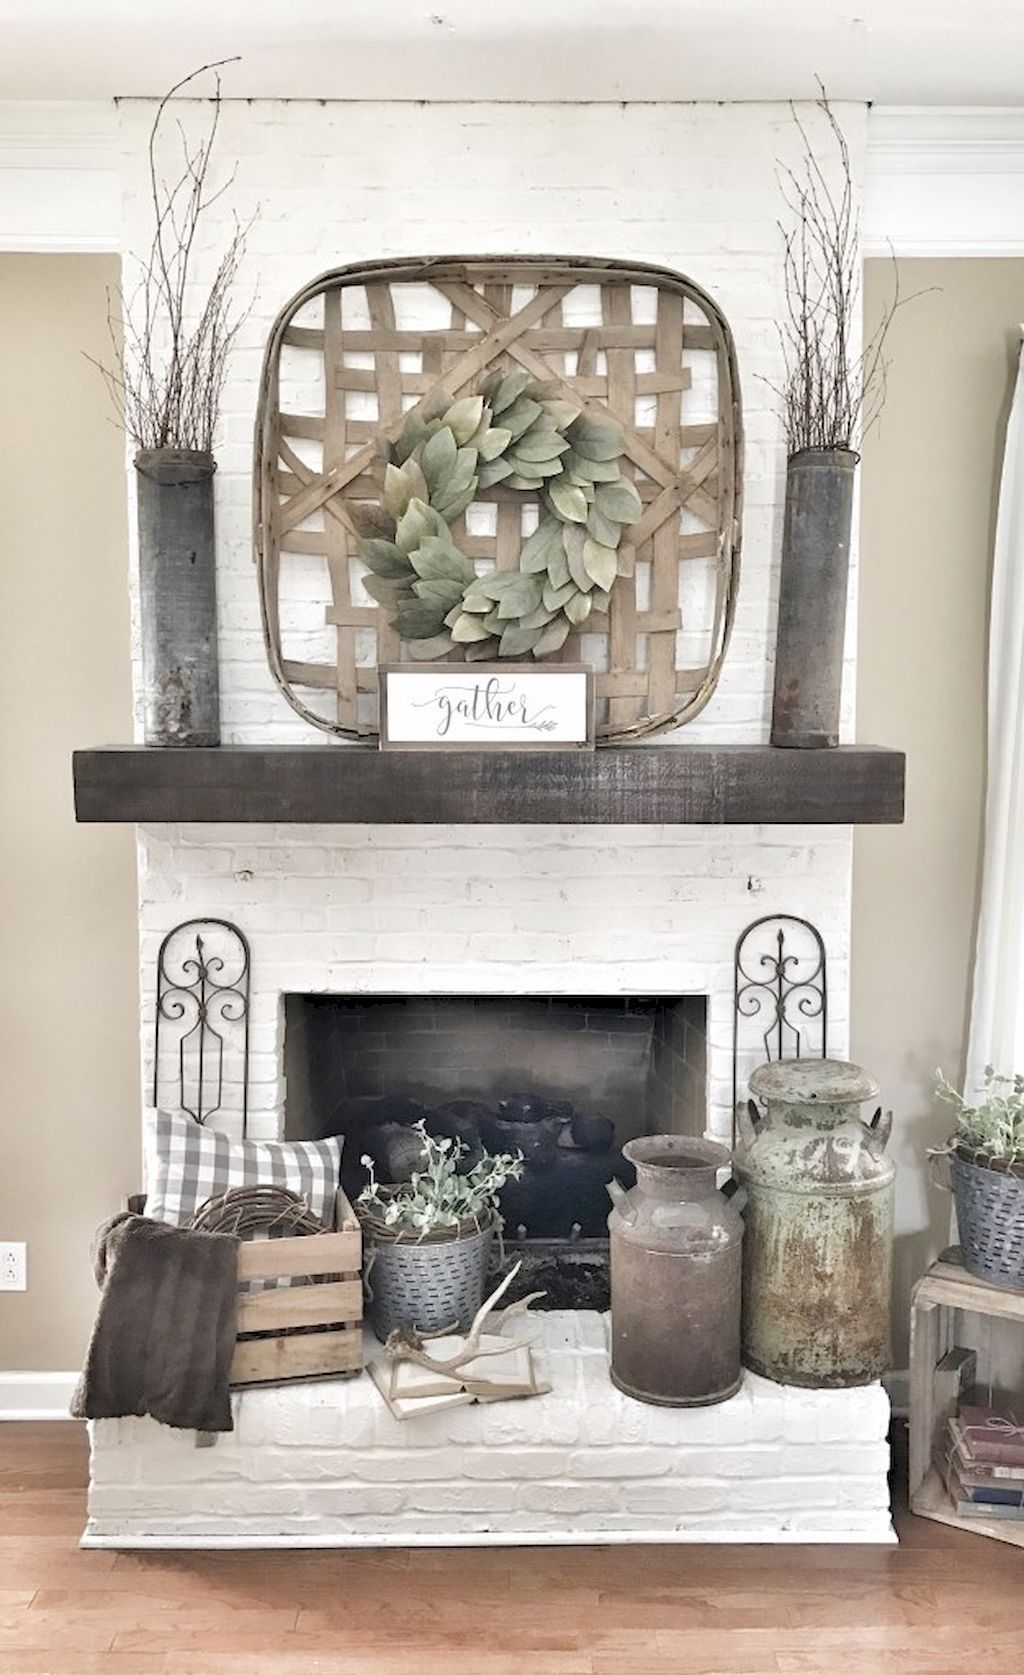 design fireplaces photo fireplace inspiration candles faux glamorous ideas fall g in